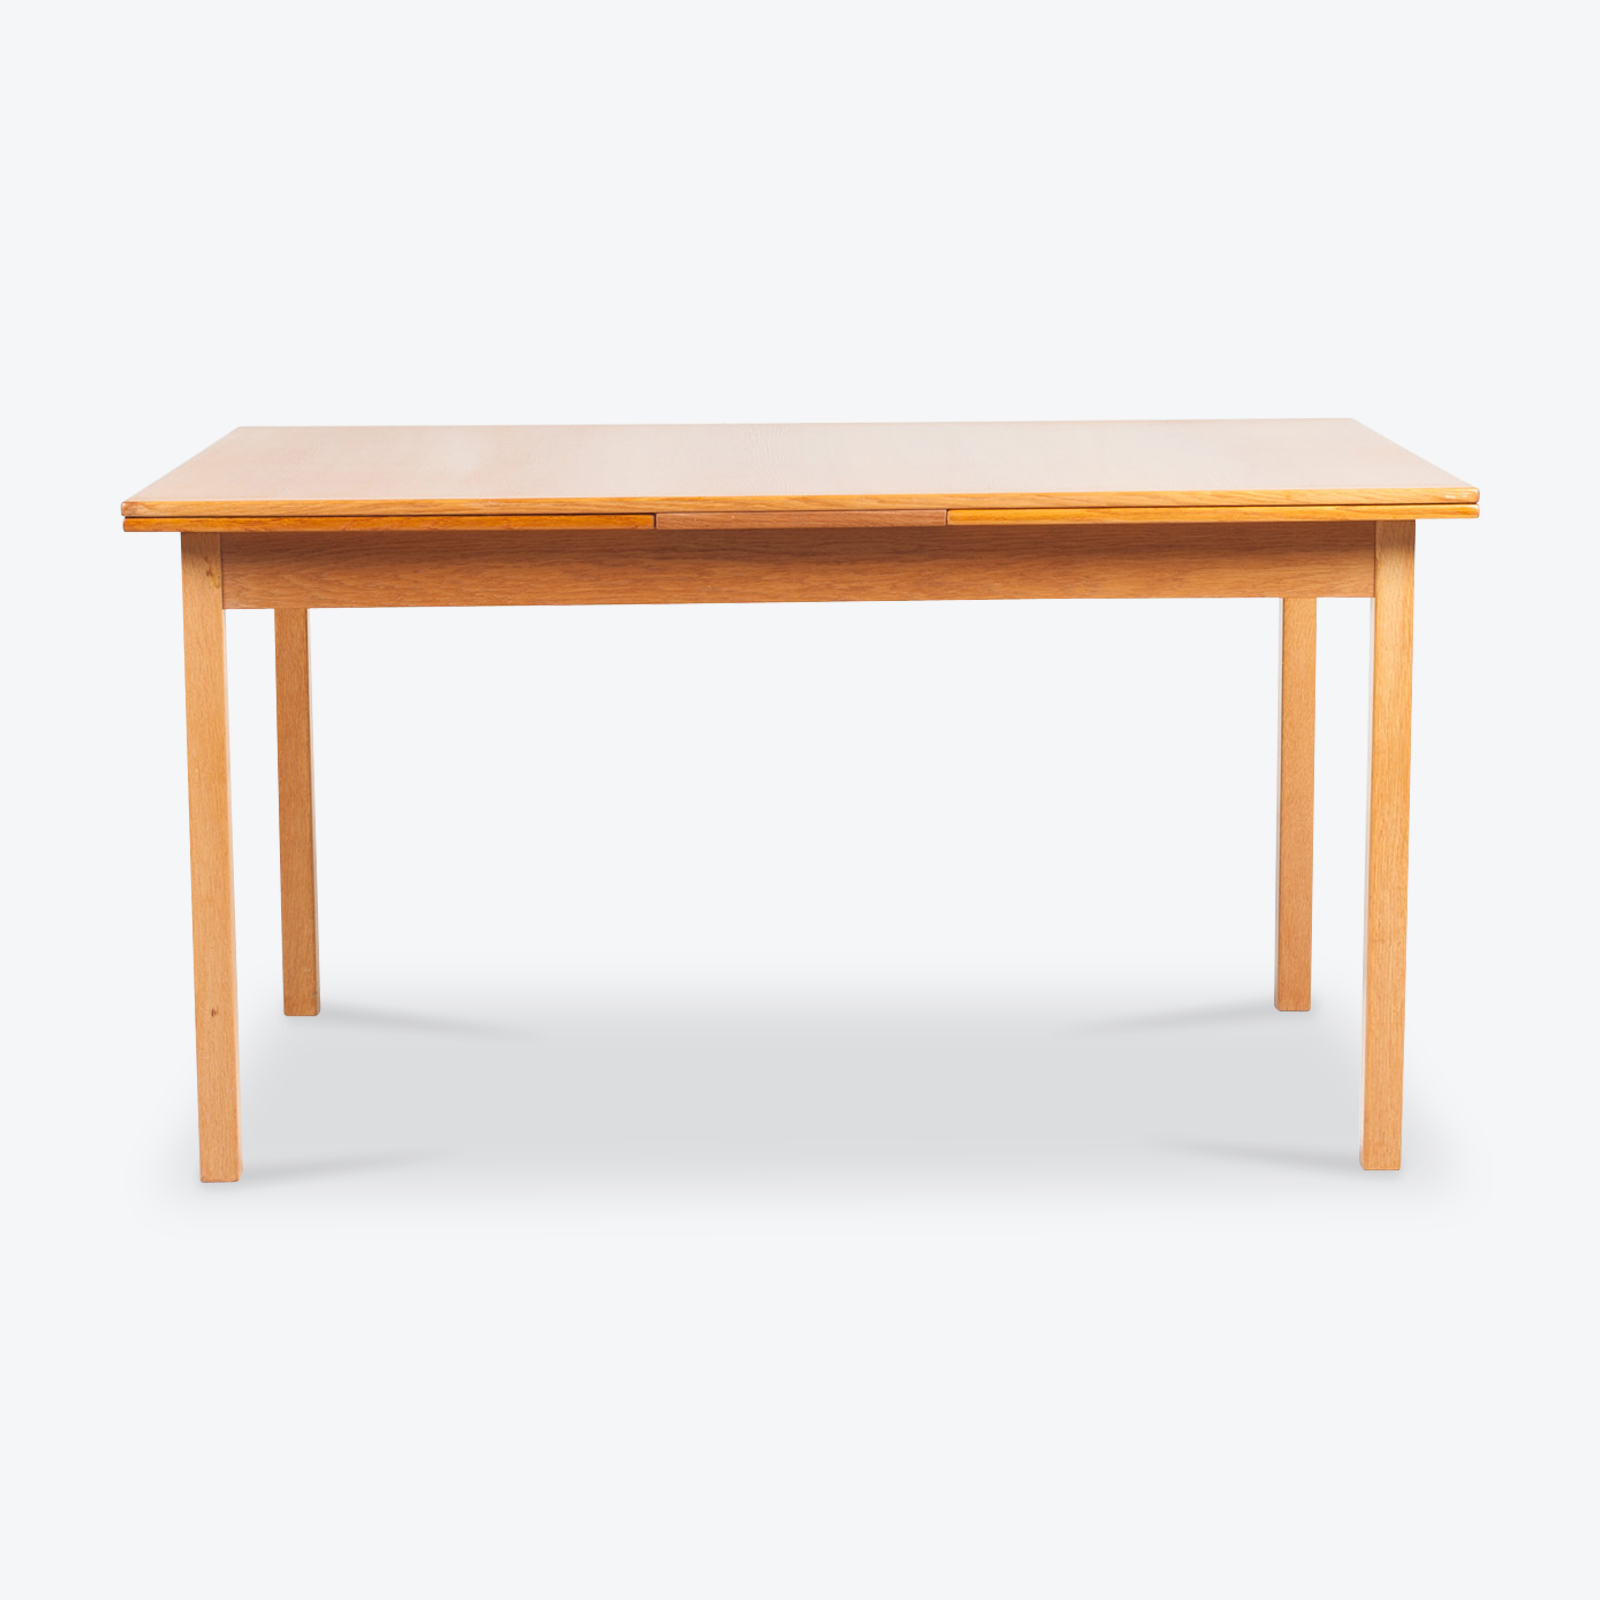 Rectangluar Dining Table By Nils Jonsson For Troeds In Teak With Breadboard Edging 1960s Denmark 00